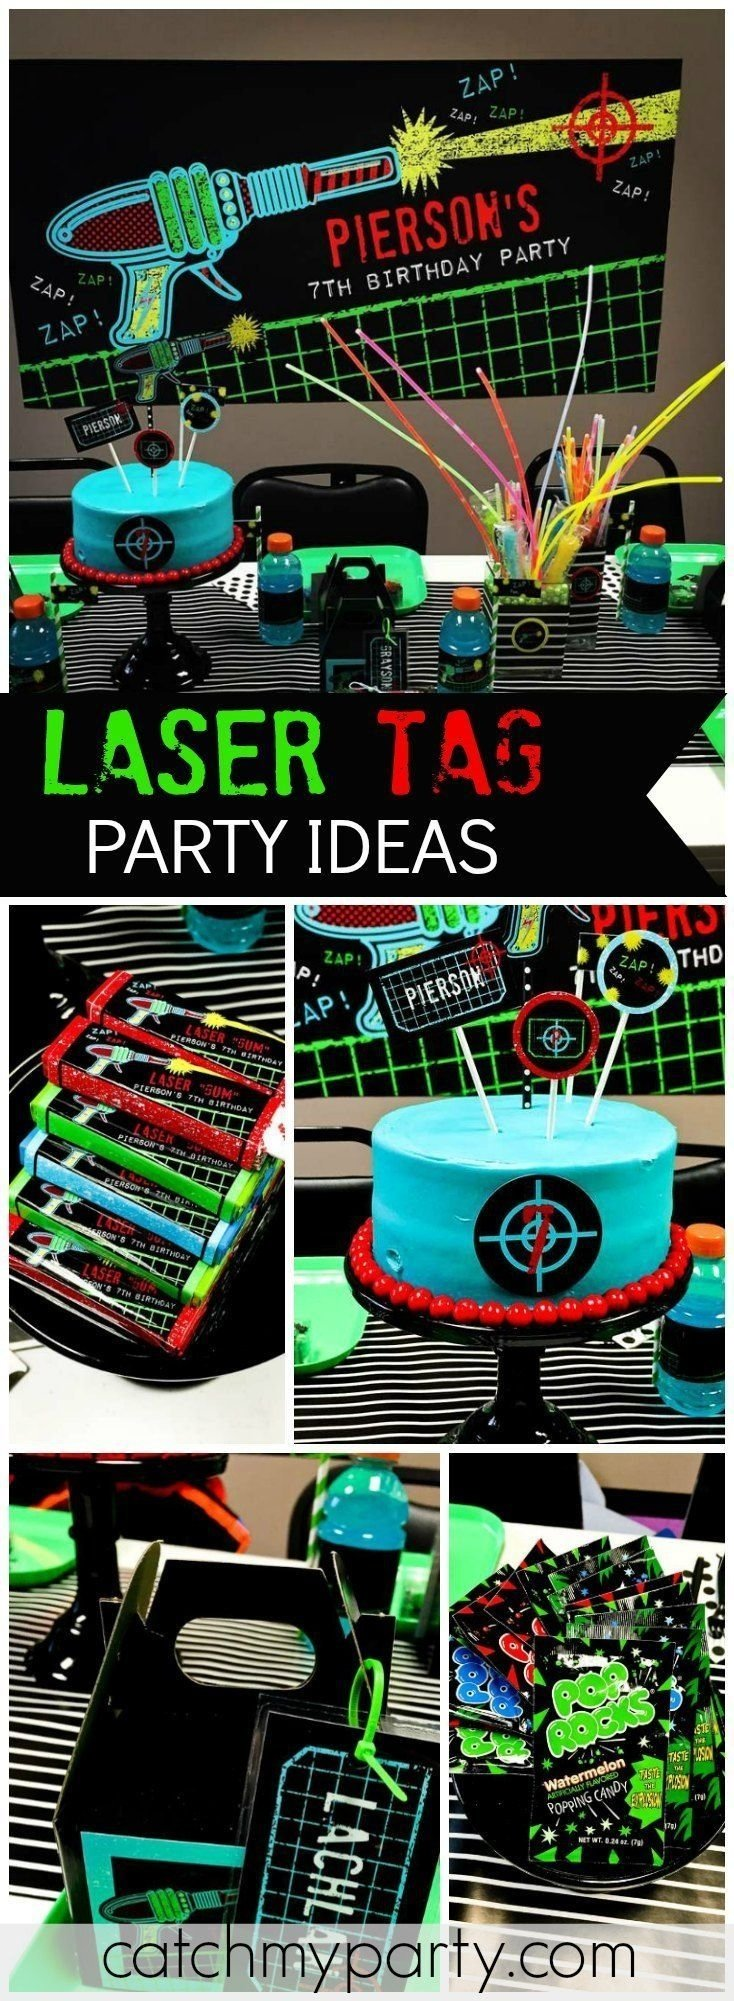 10 Spectacular Laser Tag Birthday Party Ideas laser tag birthday an awesome laser tag party